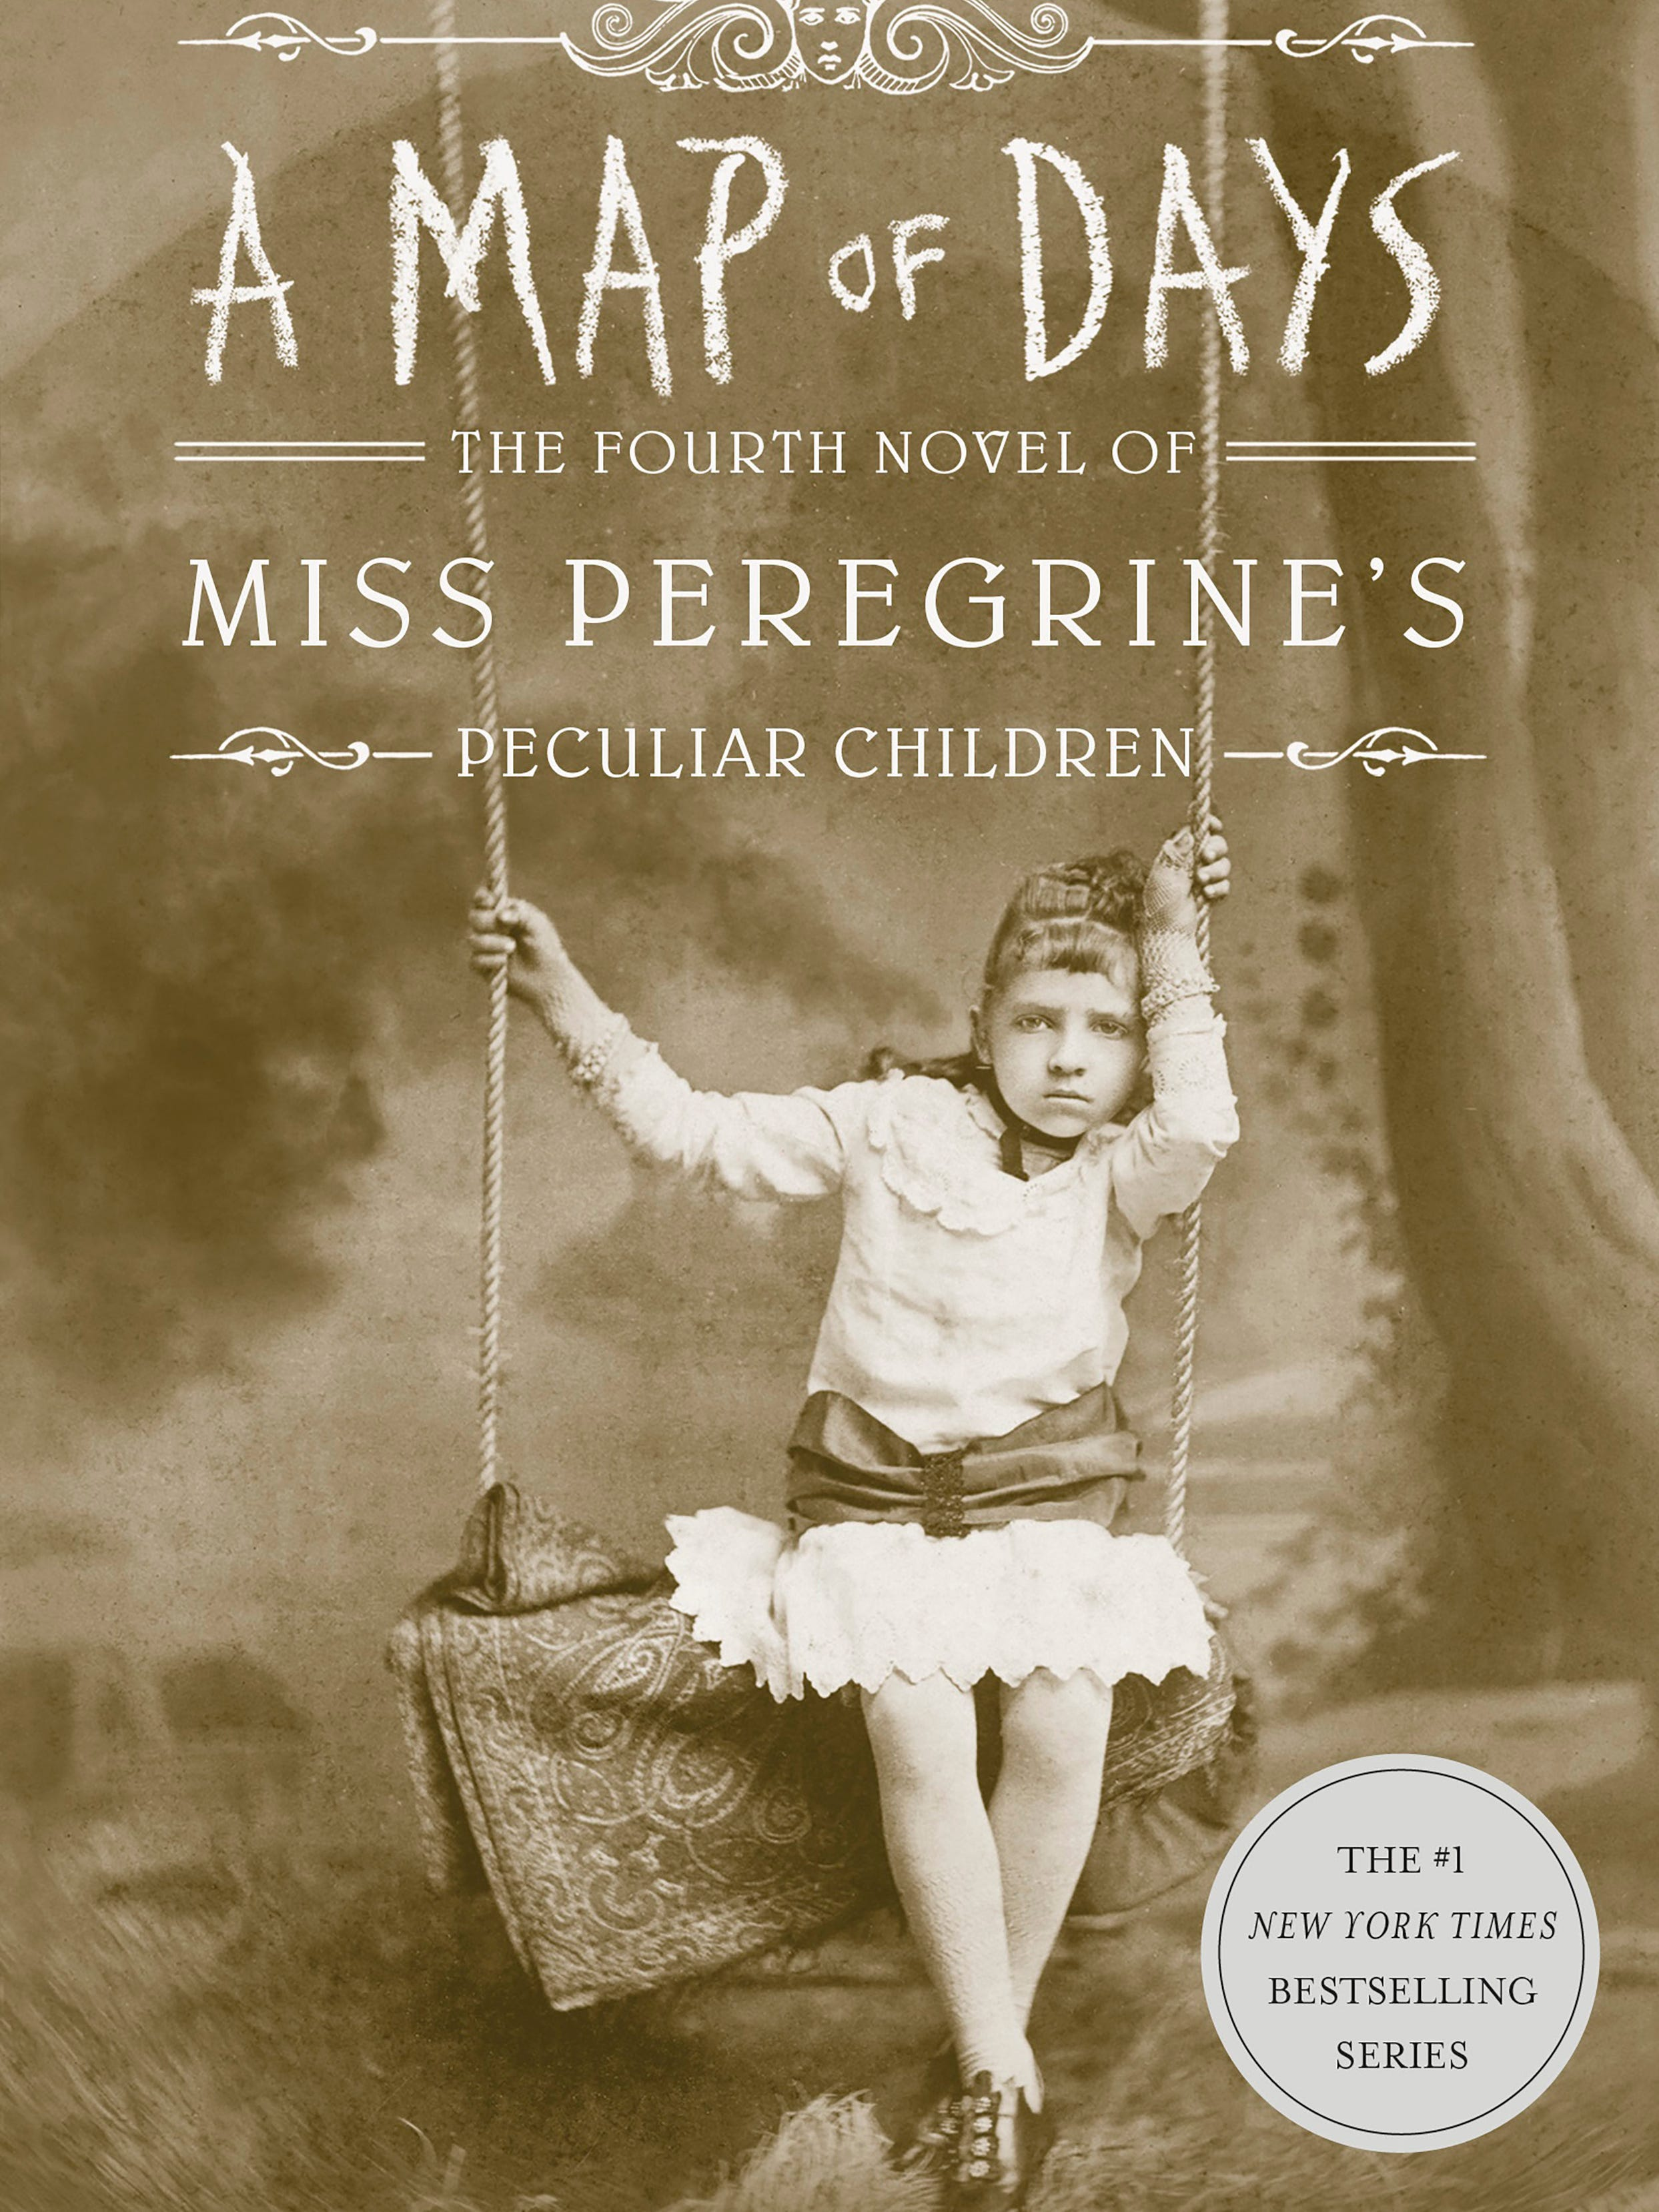 Exclusive Miss Peregrine S Book Series Kicks Off New Trilogy With A Map Of Days